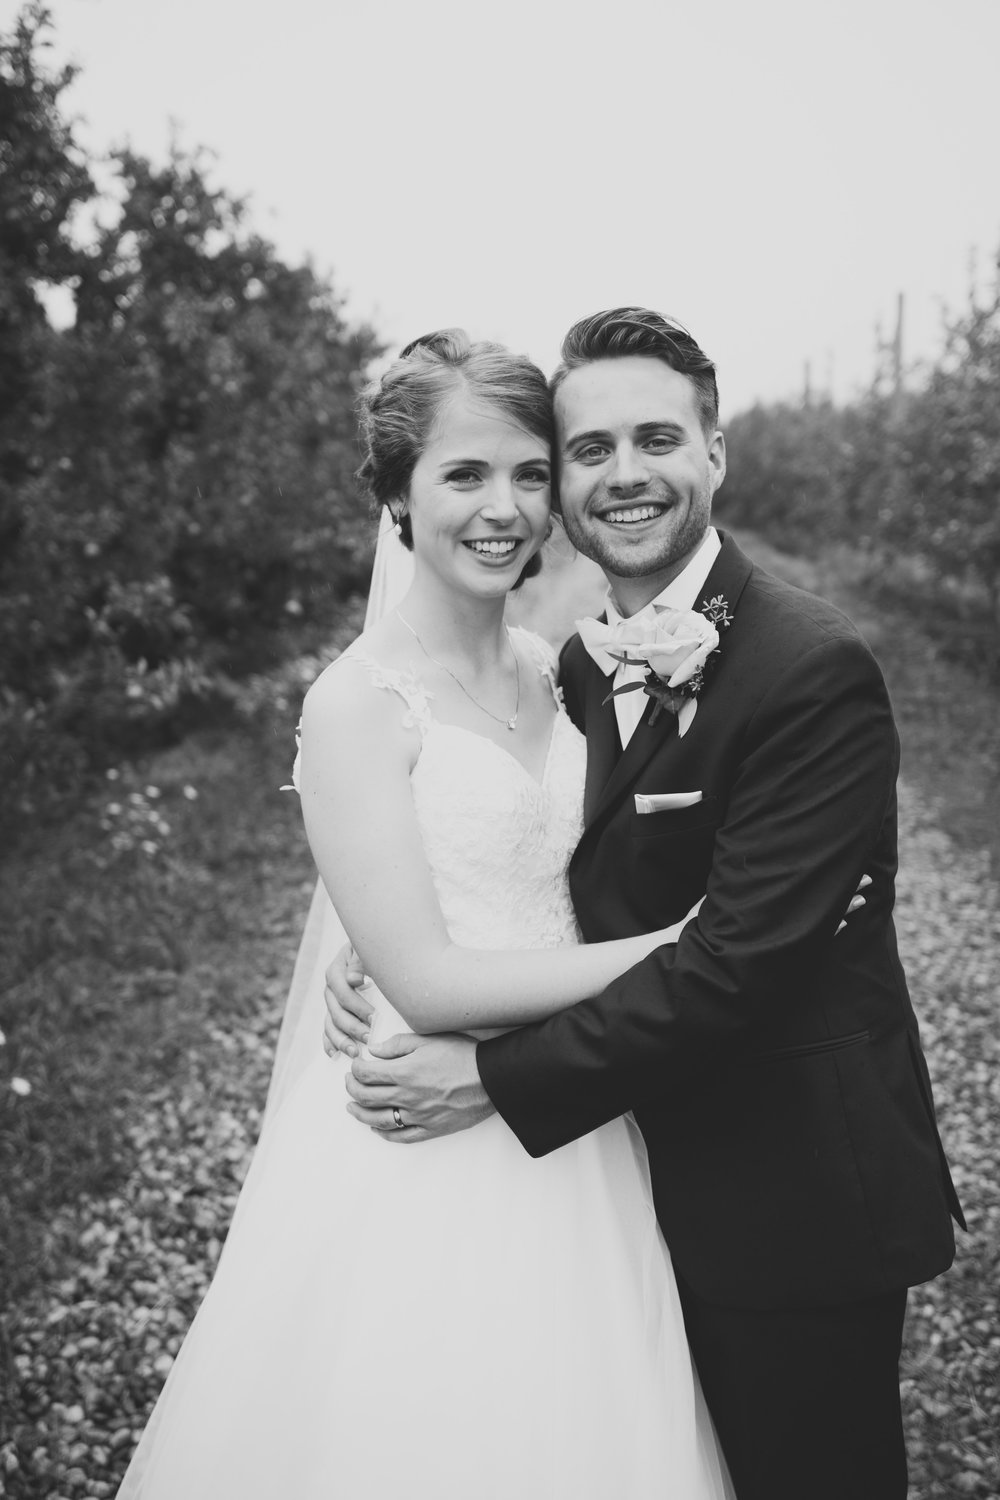 grandrapidswedding_grandrapids_grandrapidsweddingphotographer_countrywedding_orchardwedding_rainyweddingday_rain_summerwedding_grandrapidsphotographer_luna_lunawedding_jessicadarling_jdarlingphoto_ericaandaj026.jpg